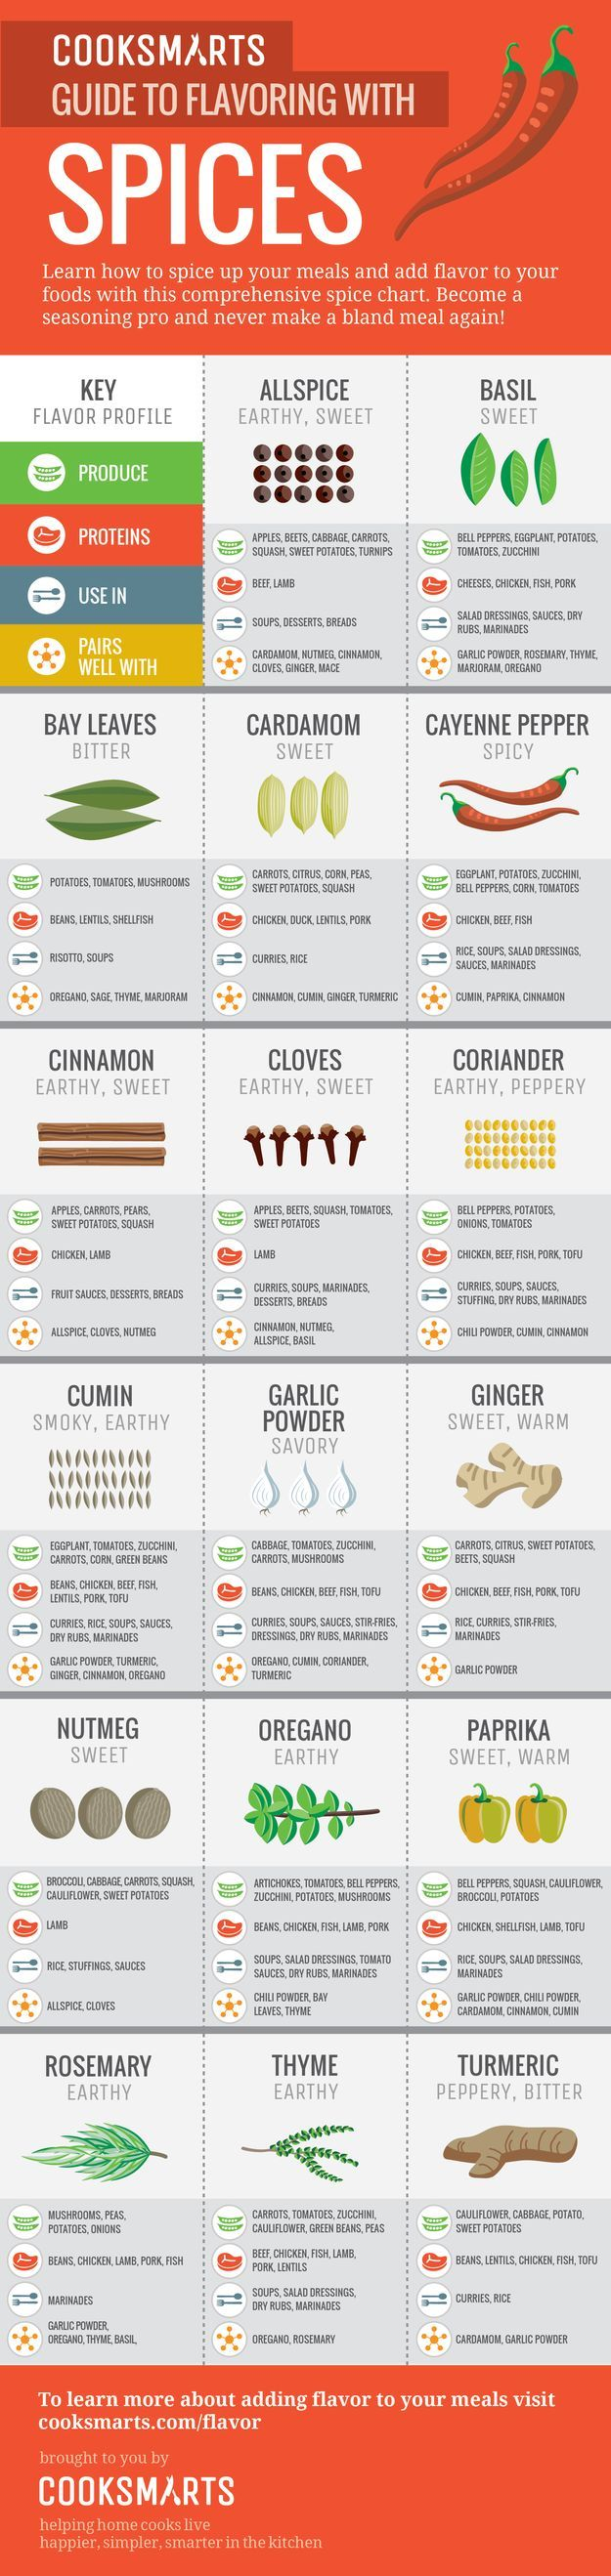 You HAVE TO check out these 10 cooking hacks! I've already tried a few and it's save me SO MUCH TIME! I already feel like a pro! This is such an AWESOME post and I'm definitely pinning for later!